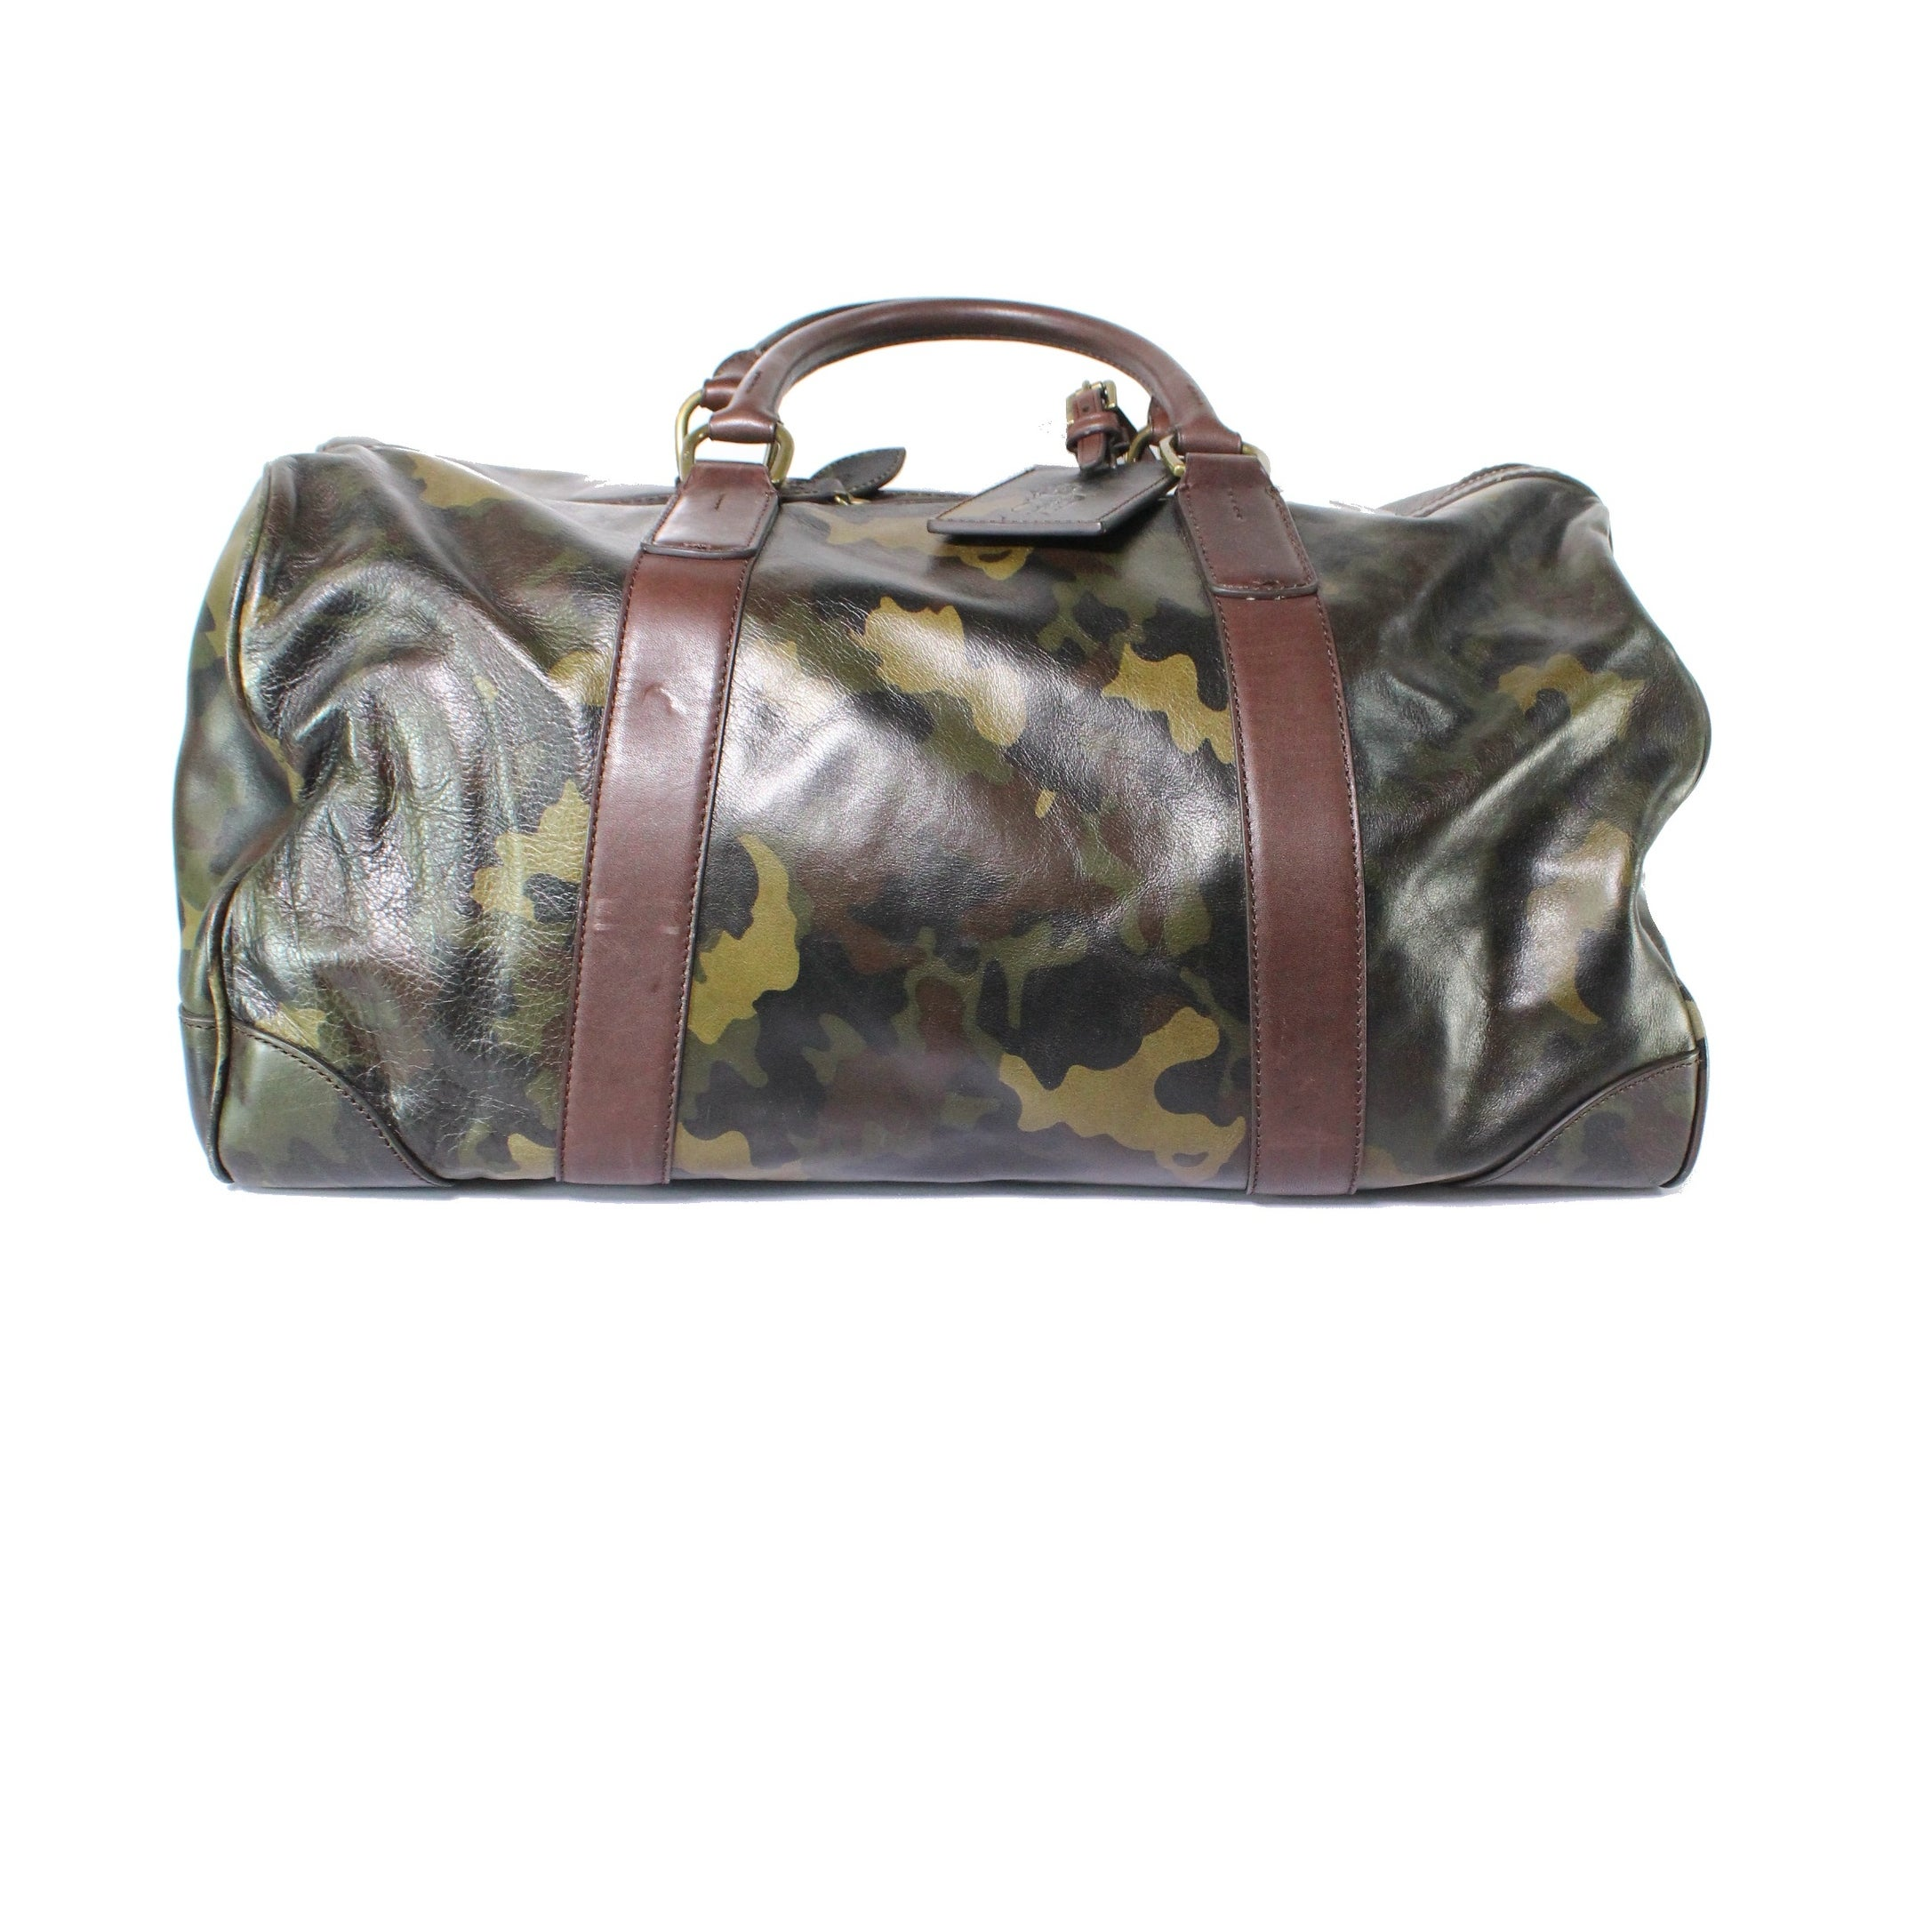 c91f4615d Shop Polo Ralph Lauren NEW Green One Size Camoflauge Leather Duffle Bag -  Free Shipping Today - Overstock - 19788573